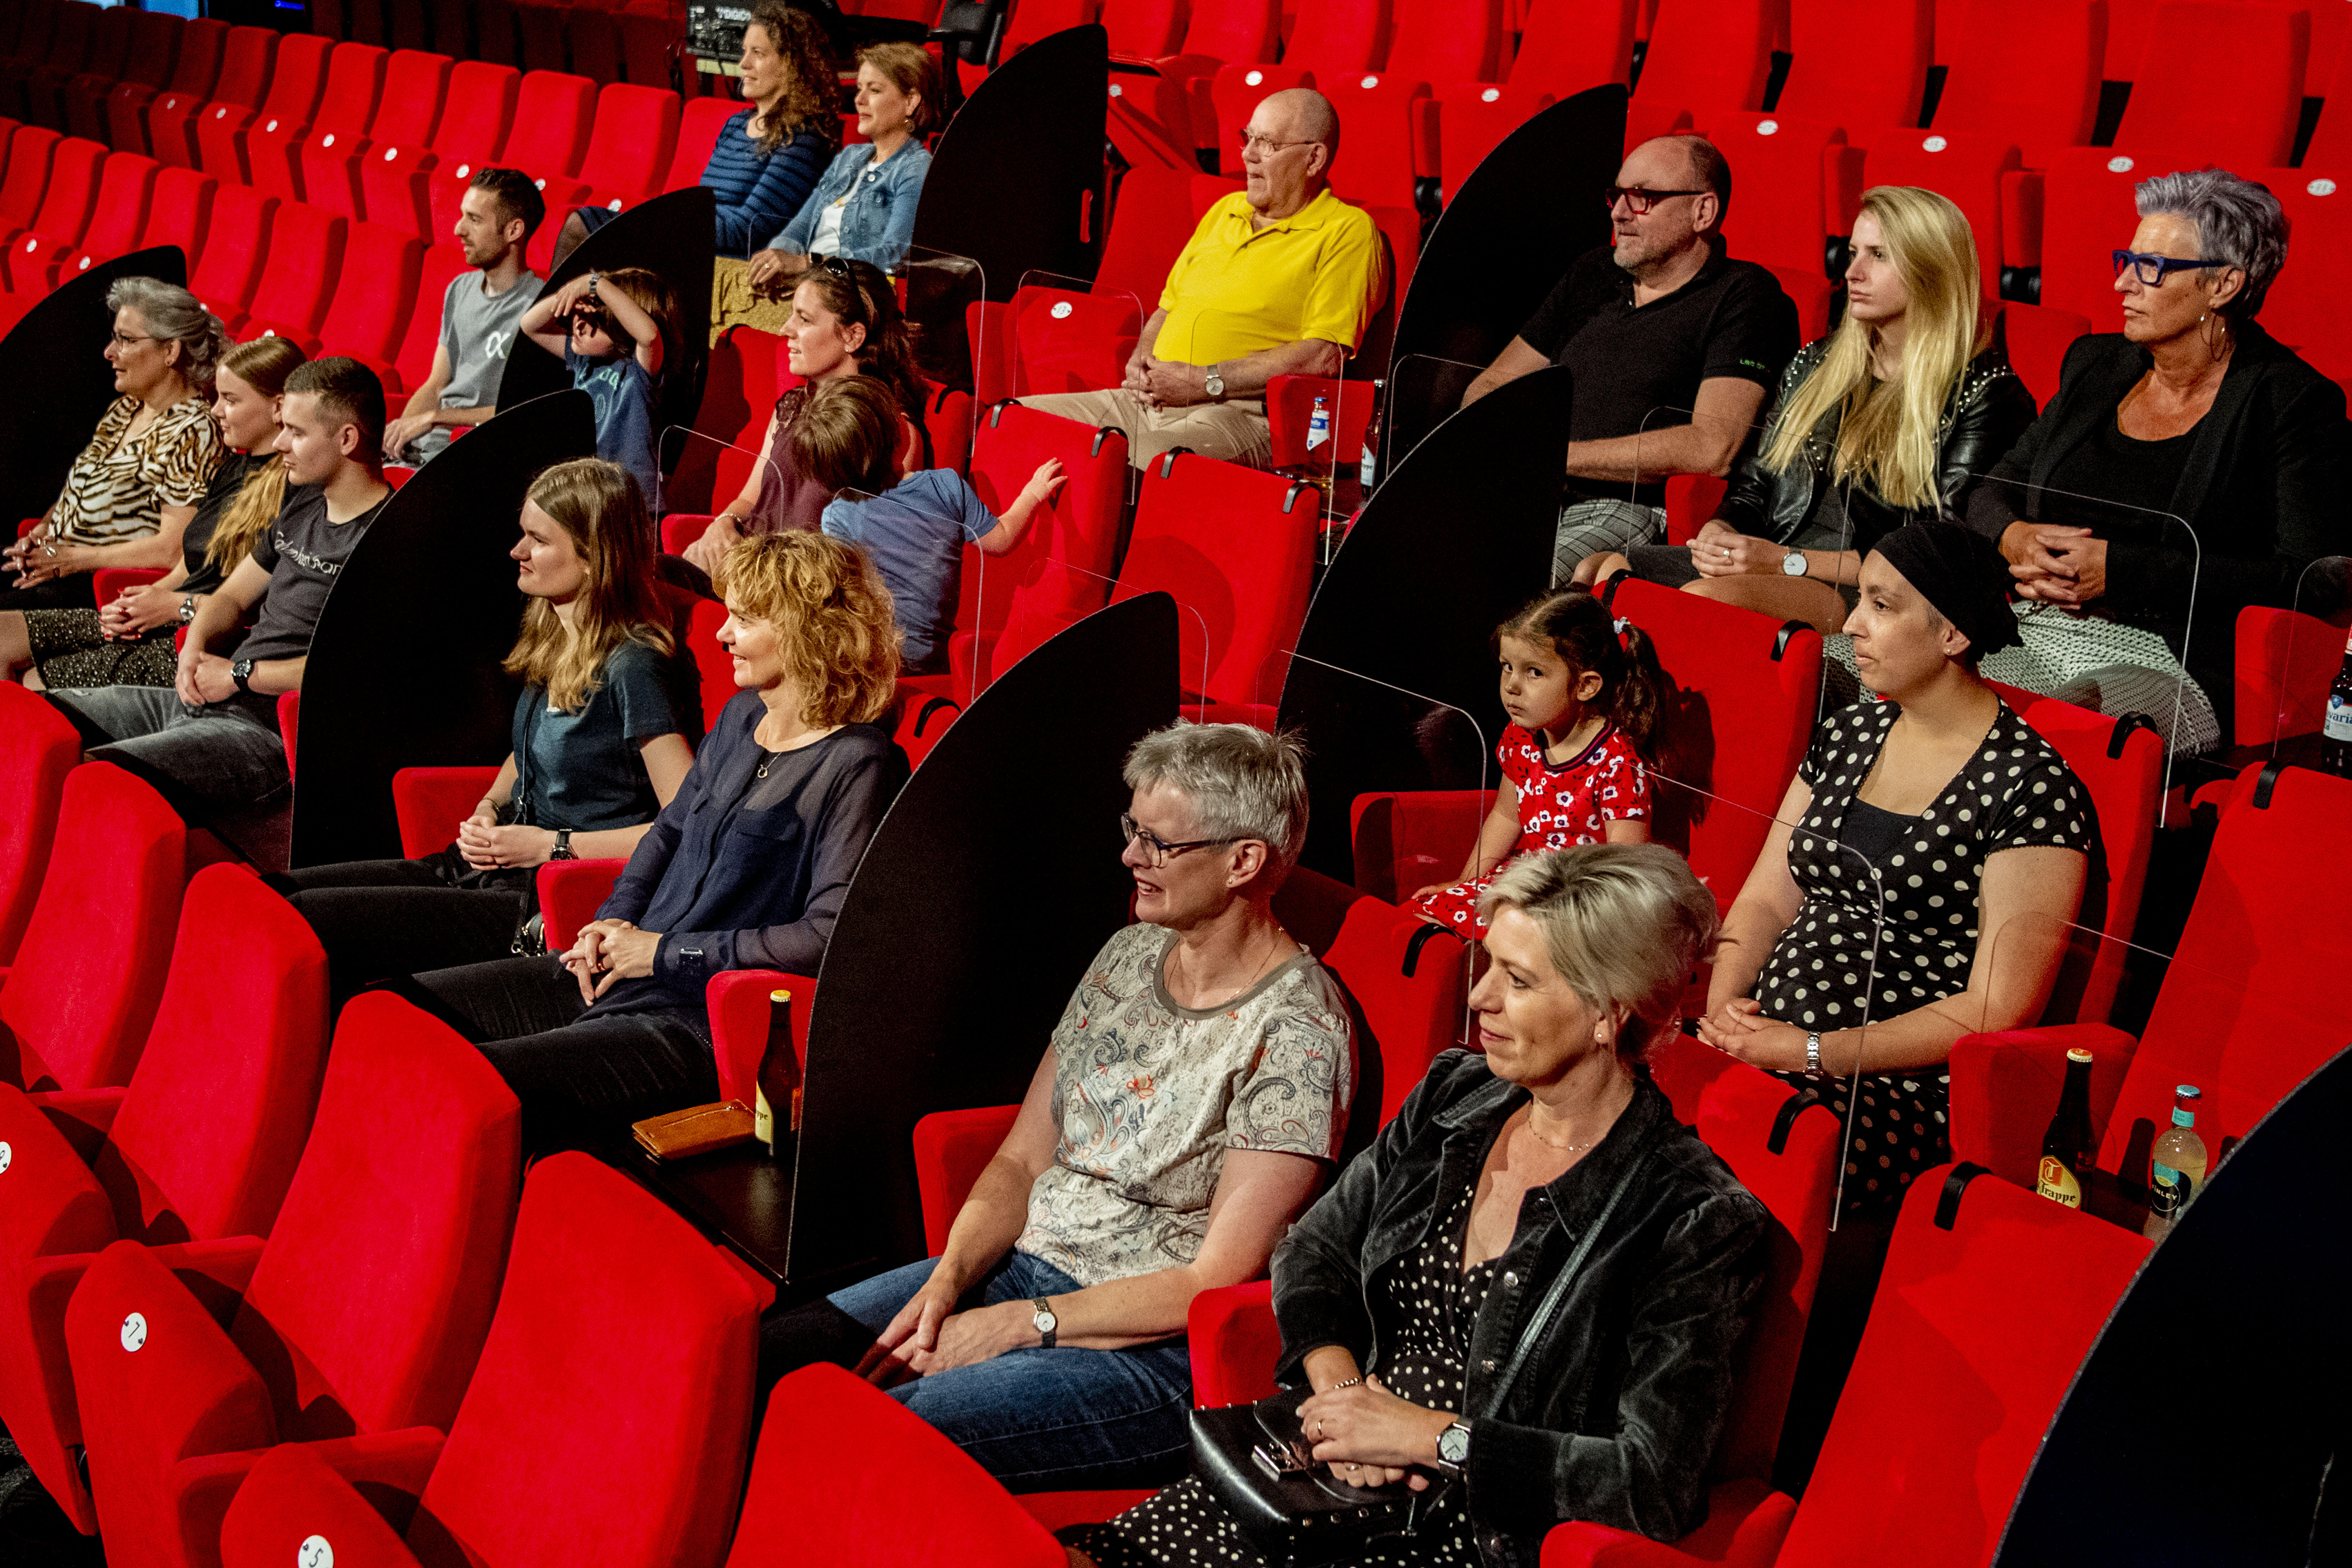 The Netherlands: Dividers between theater seats